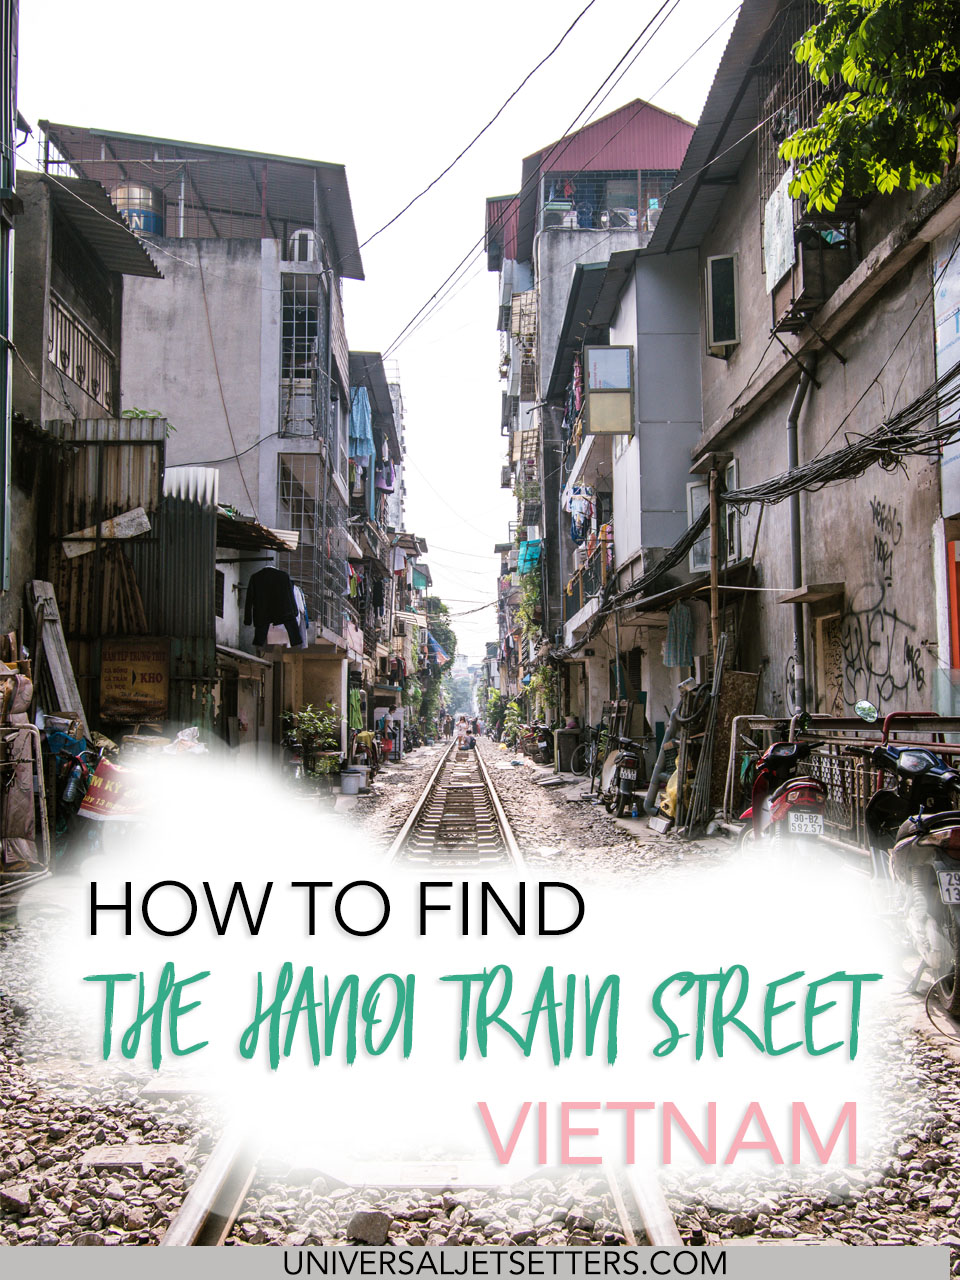 Nestled in the the Old Quarter is the Hanoi train street - a narrow alley where people live, but also where an active train line passes through twice a day.